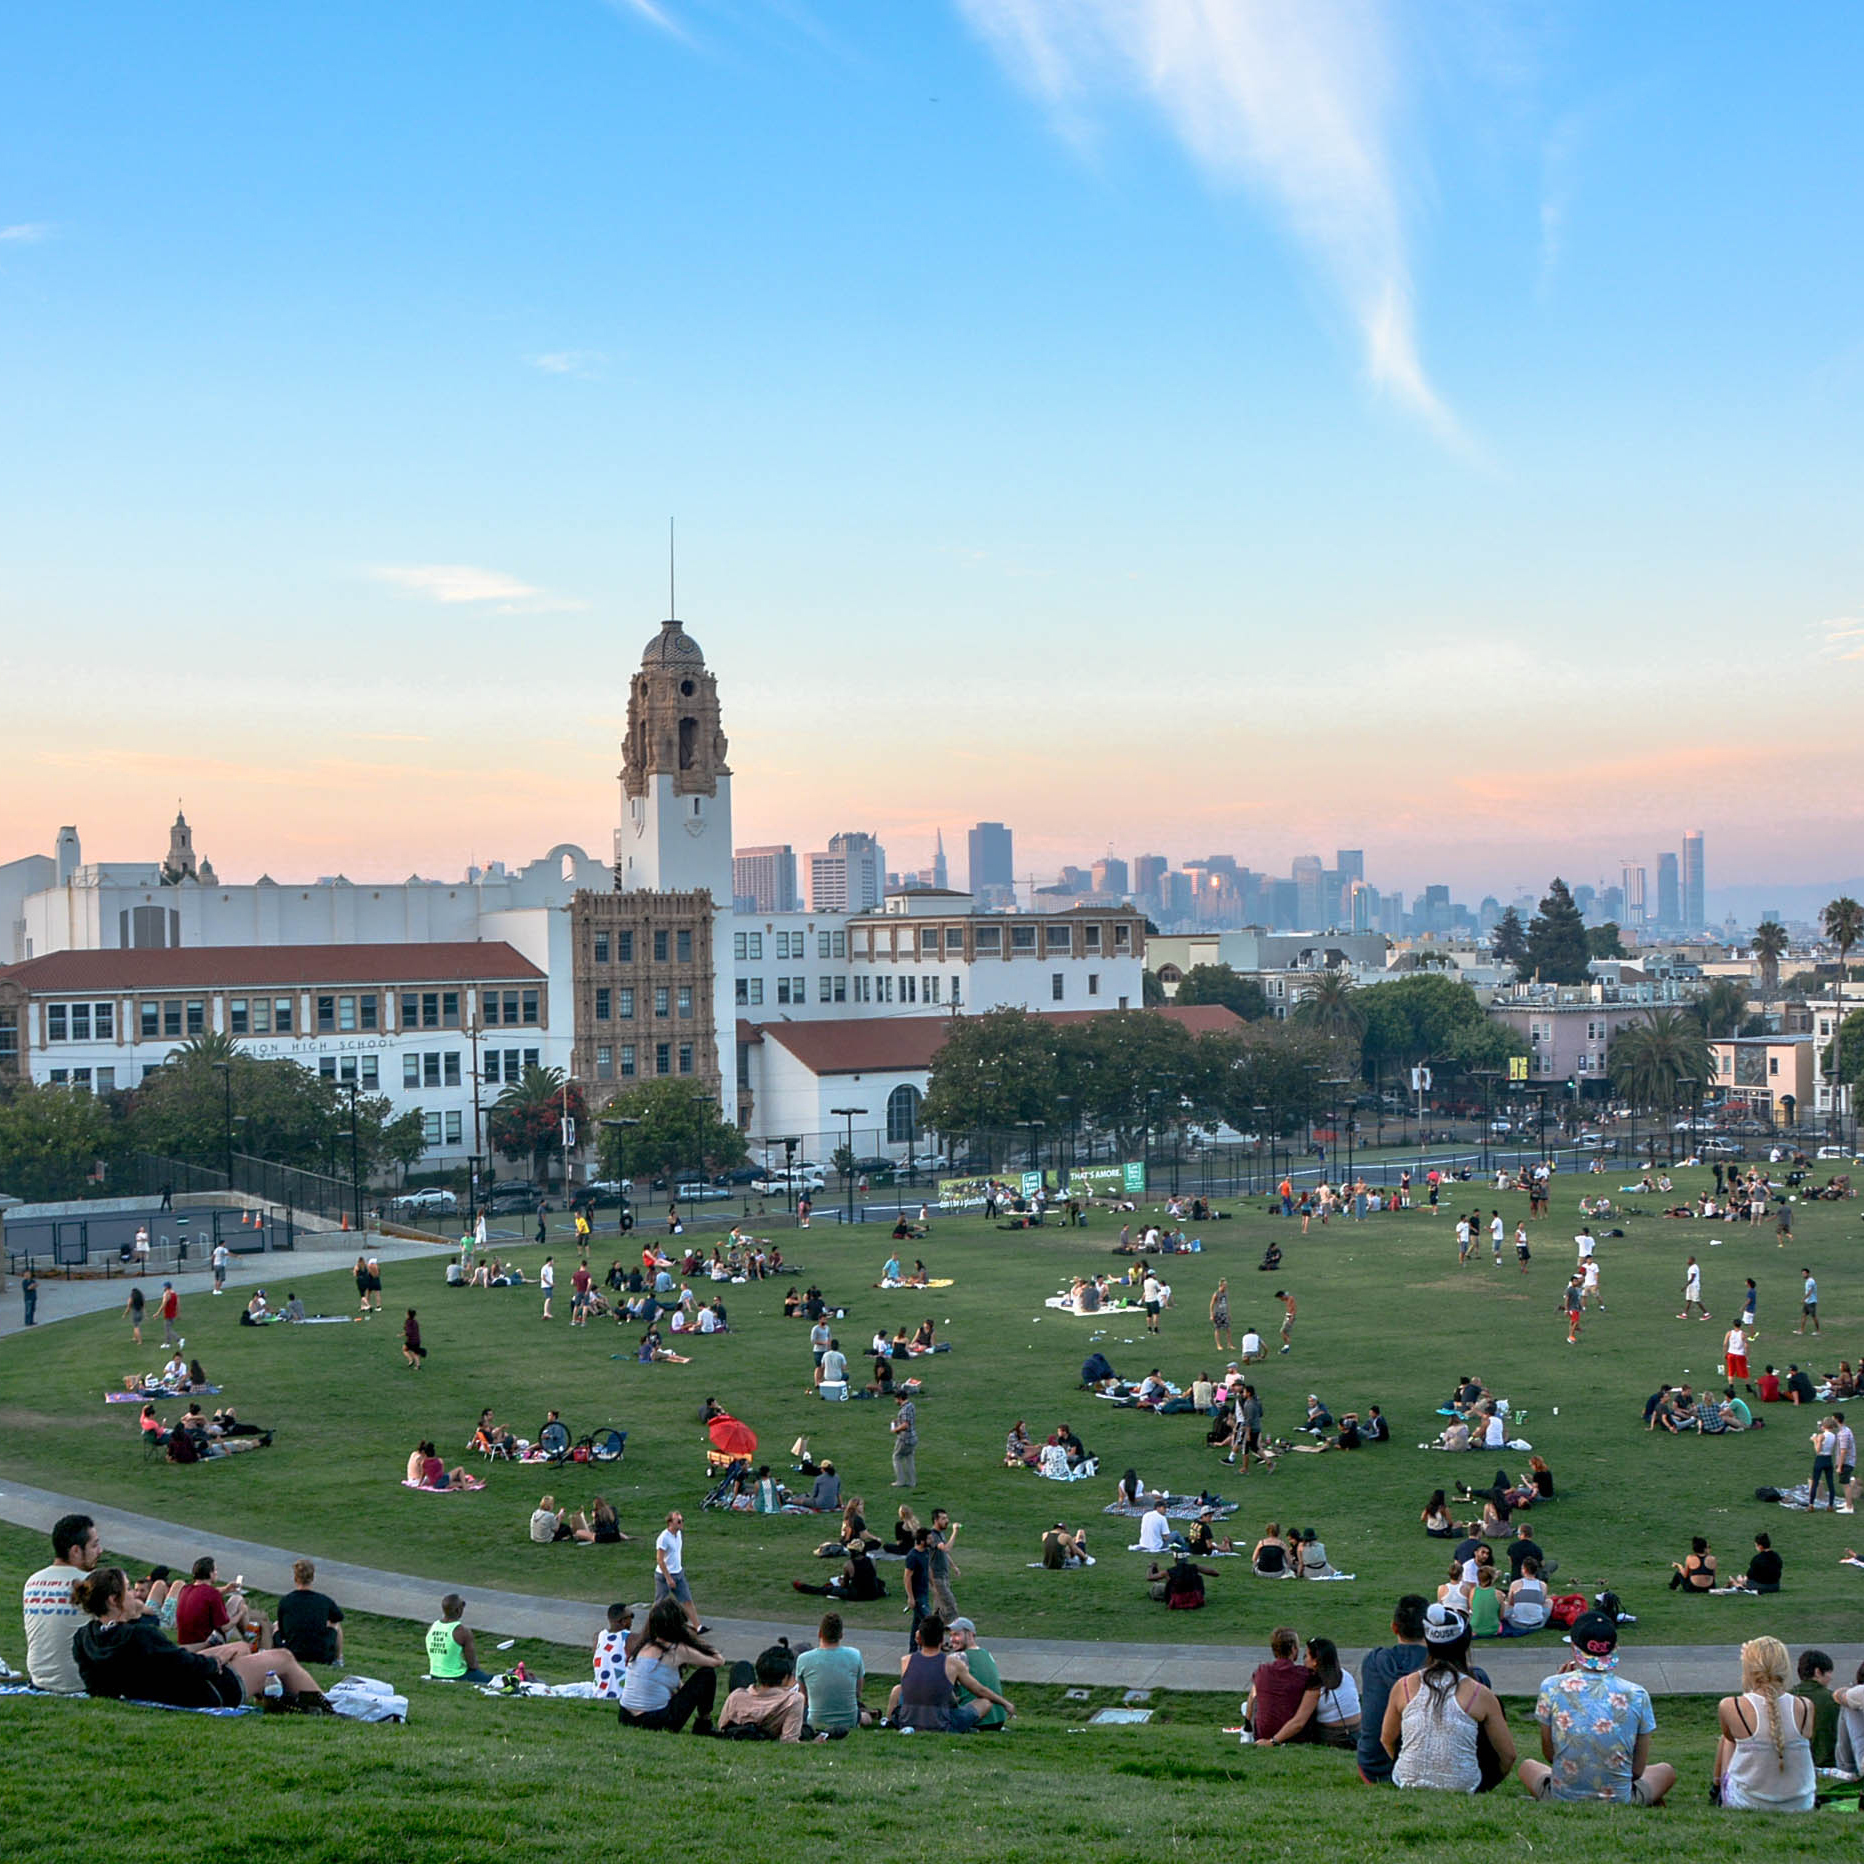 dolores-park-san-francisco-fwx